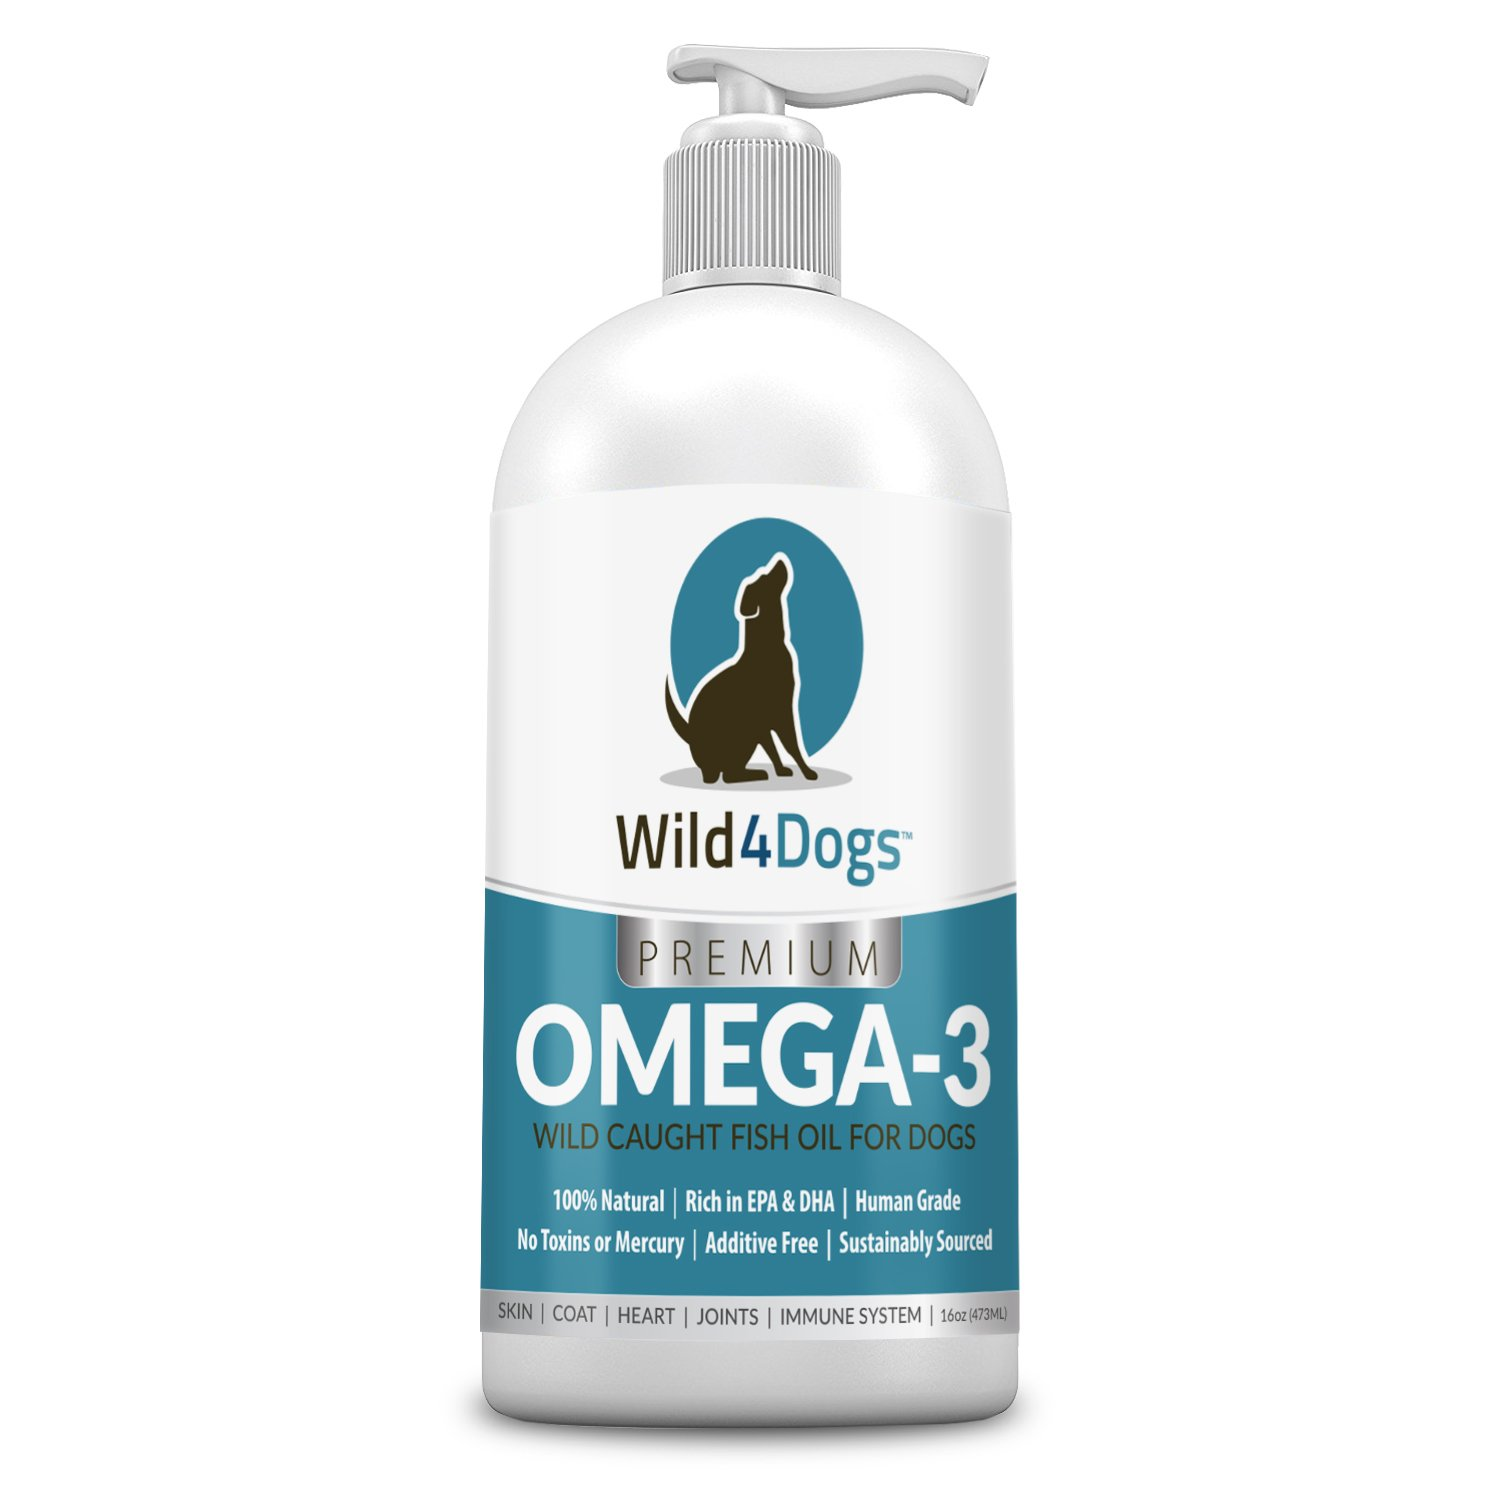 Premium Omega 3 Fish Oil for Dogs - Promotes Healthy Coat, Skin, Heart, and Eases Joint Pain - Omega 3 for Dogs is All-Natural, Nutrient Rich, Wild Caught - Dog Fish Oil Supplement, 16 fl oz by Wild 4 Dogs